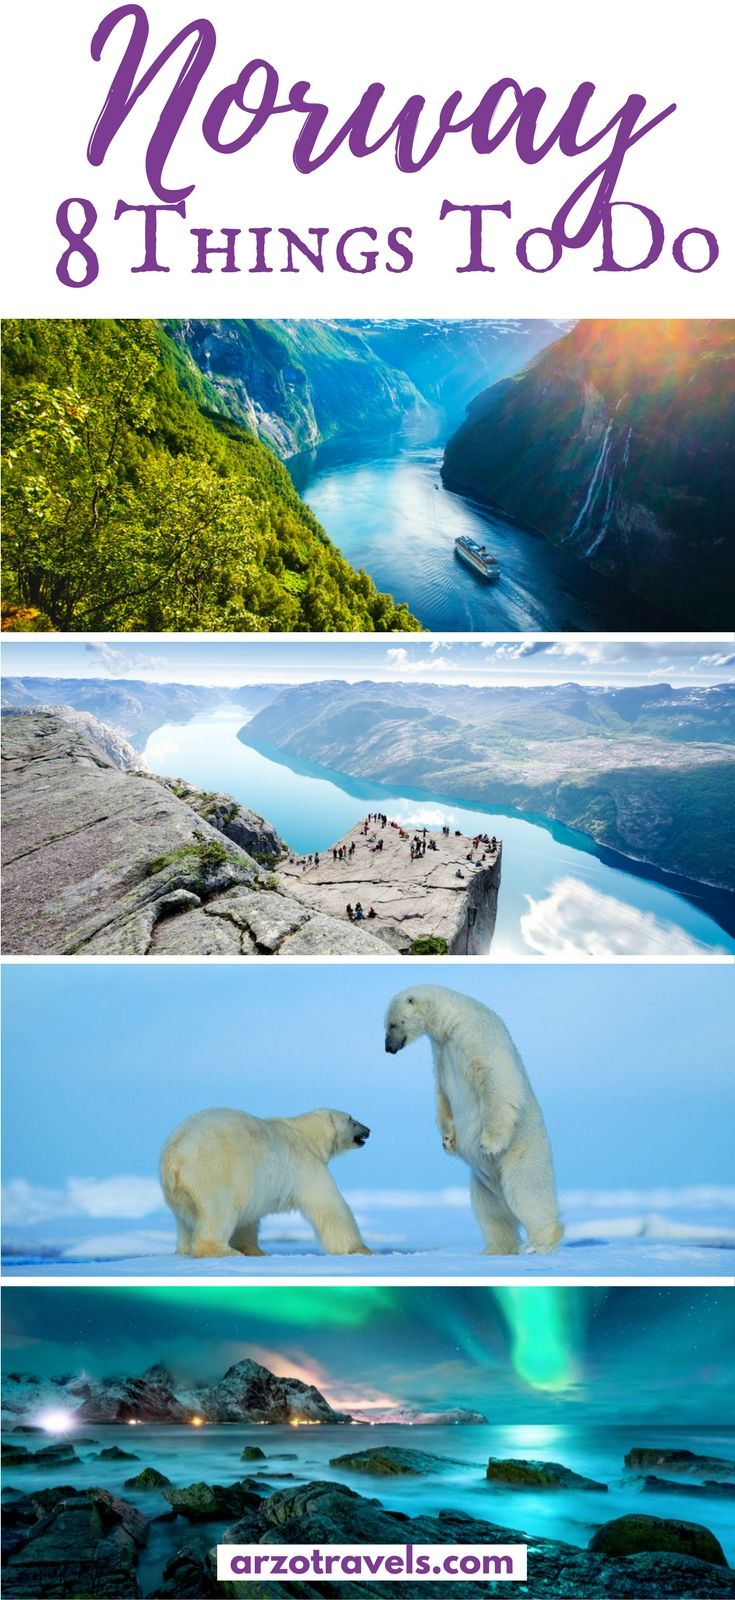 Find out about the best things to do and see in beautiful Norway. From seeing the northern lights to cruising the fjords, here is everything you need to know for things to do in Norway.